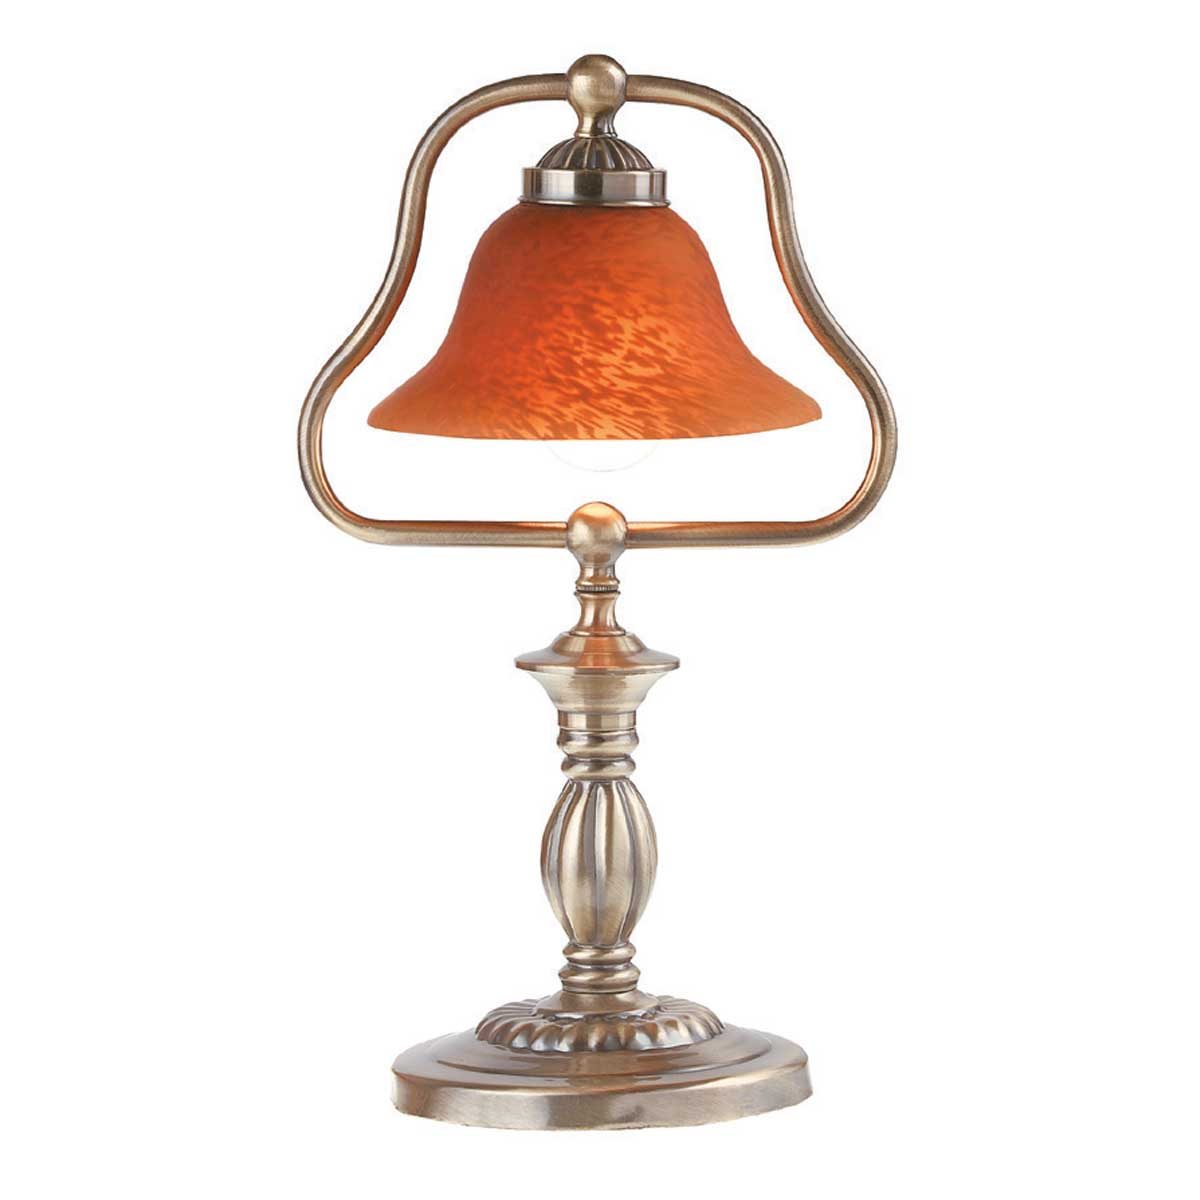 Table lamp amber antique brass lamp 17h pretable lamp amber antique brass lamp 17inchh aloadofball Image collections